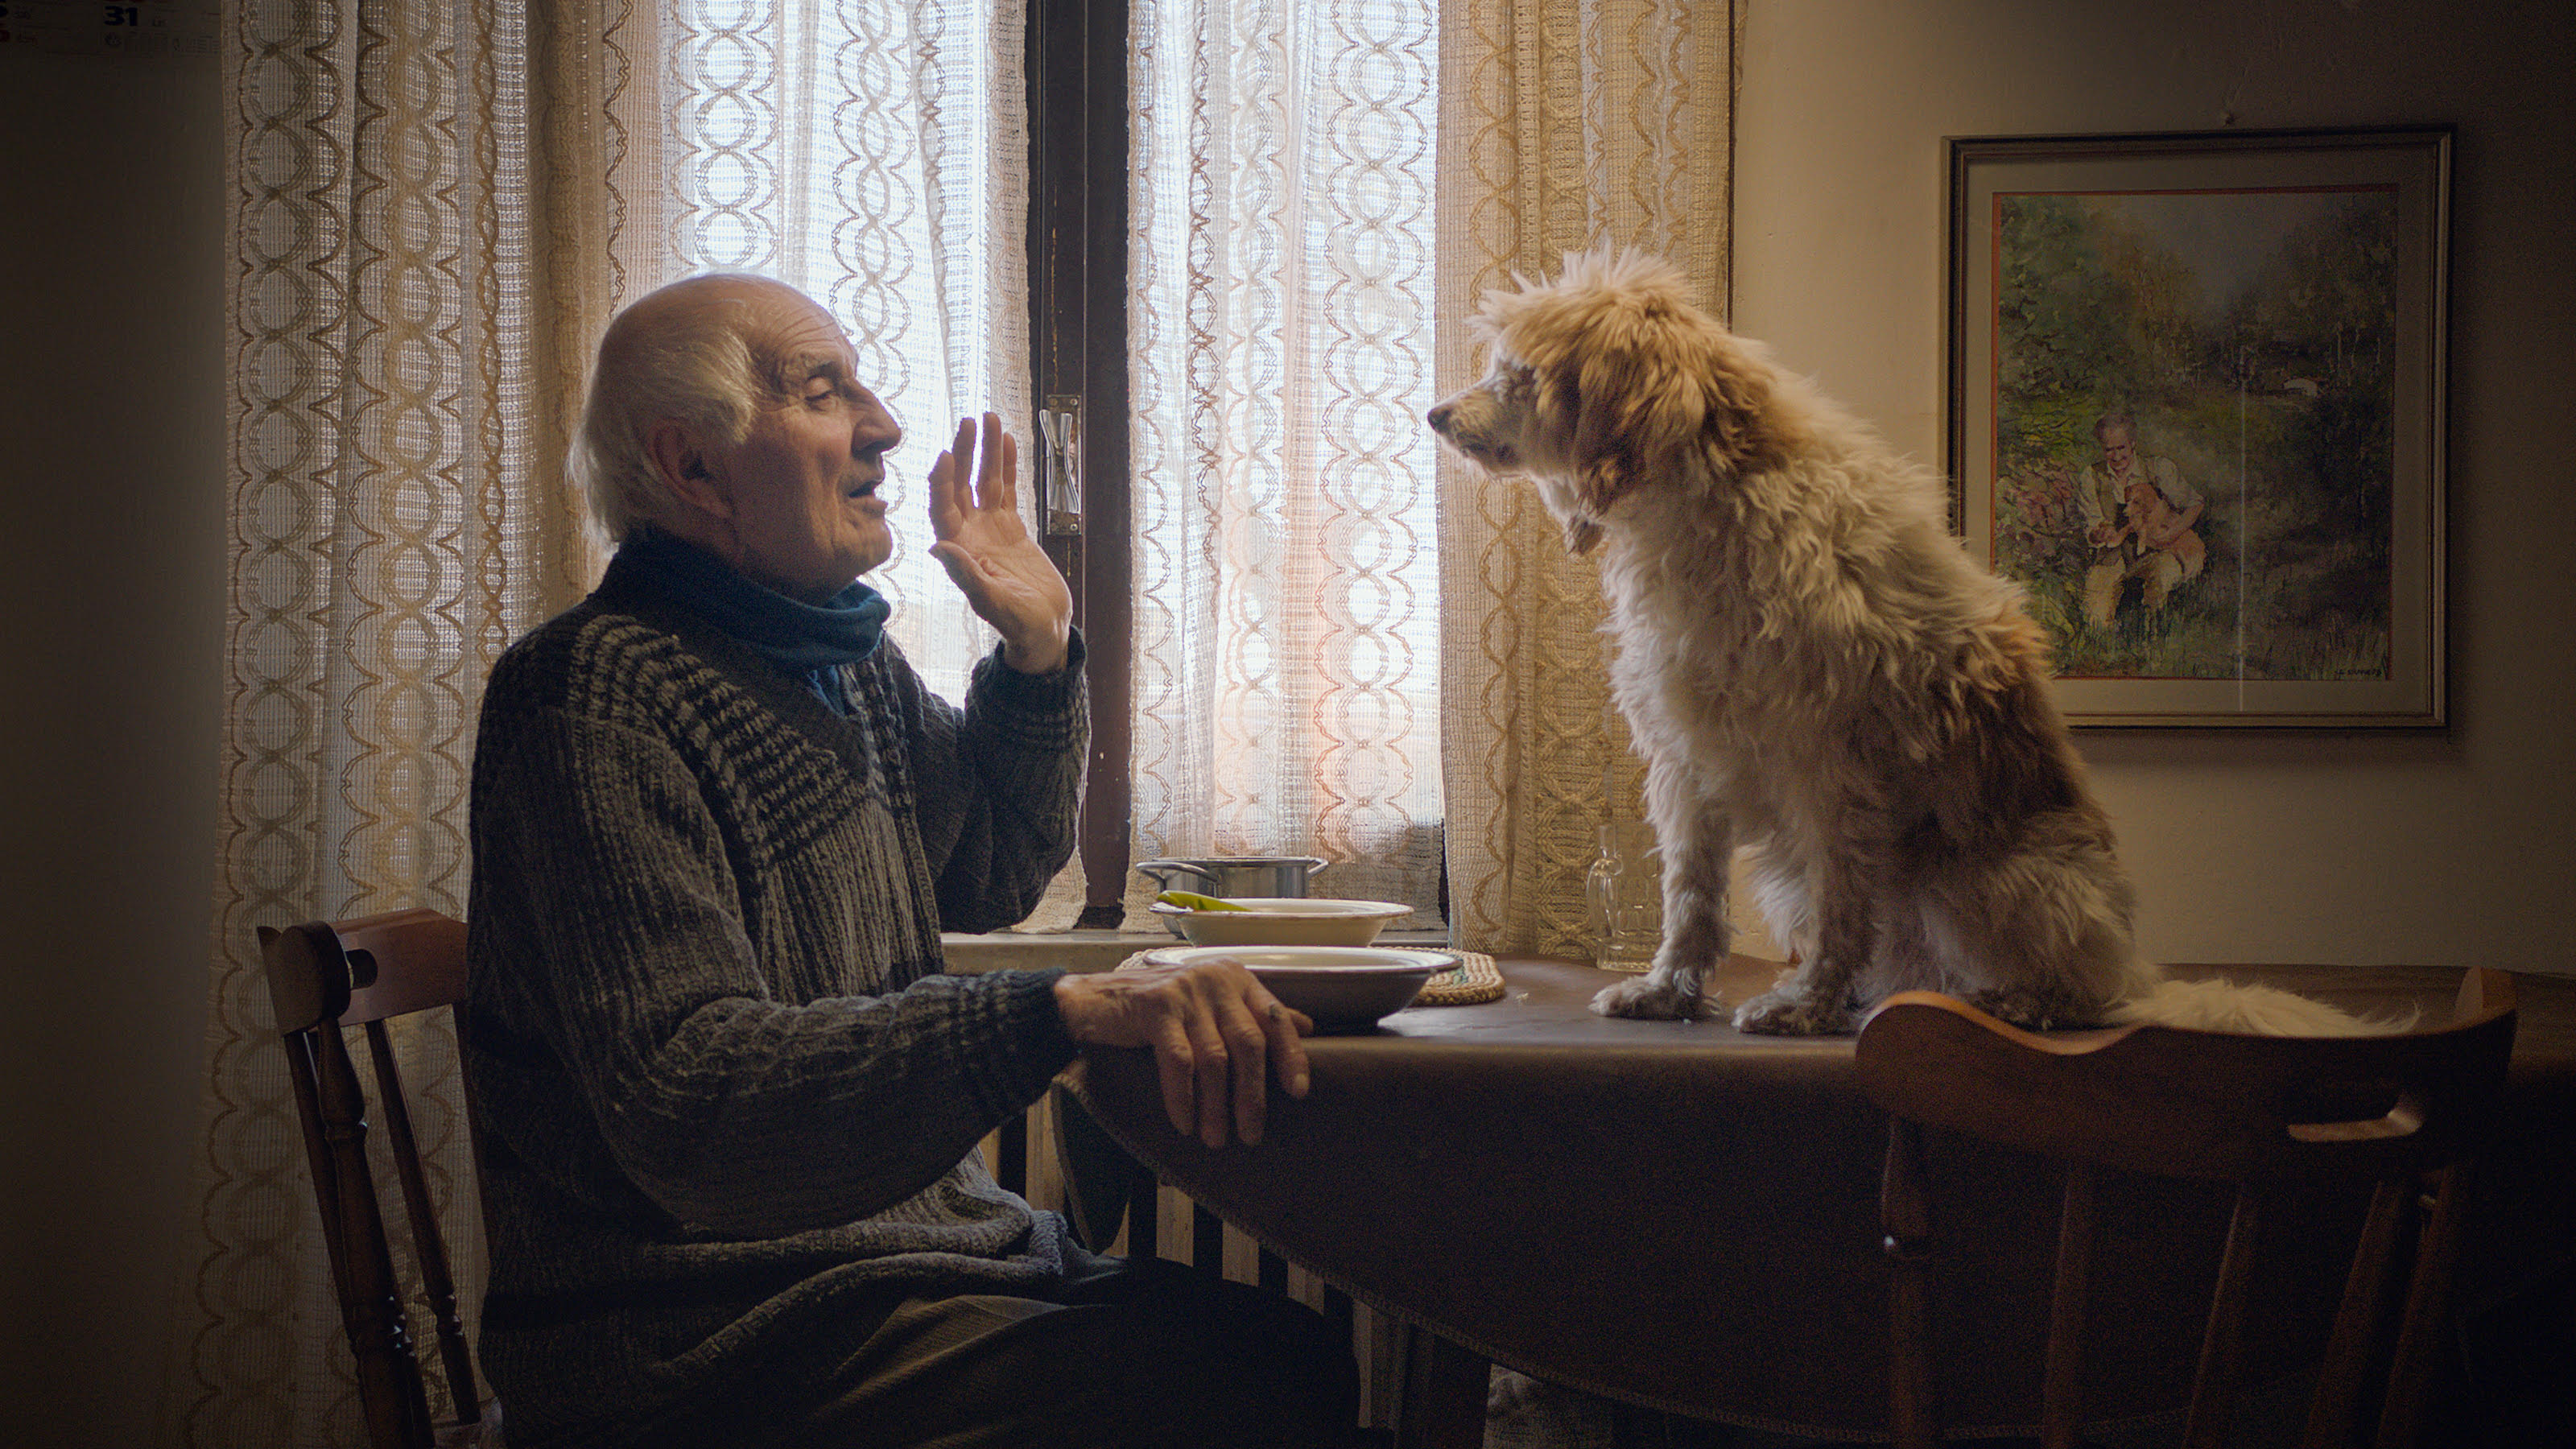 An elderly Italian man in a dining chair talks to a mid-sized shaggy dog that's sitting on the dining table.